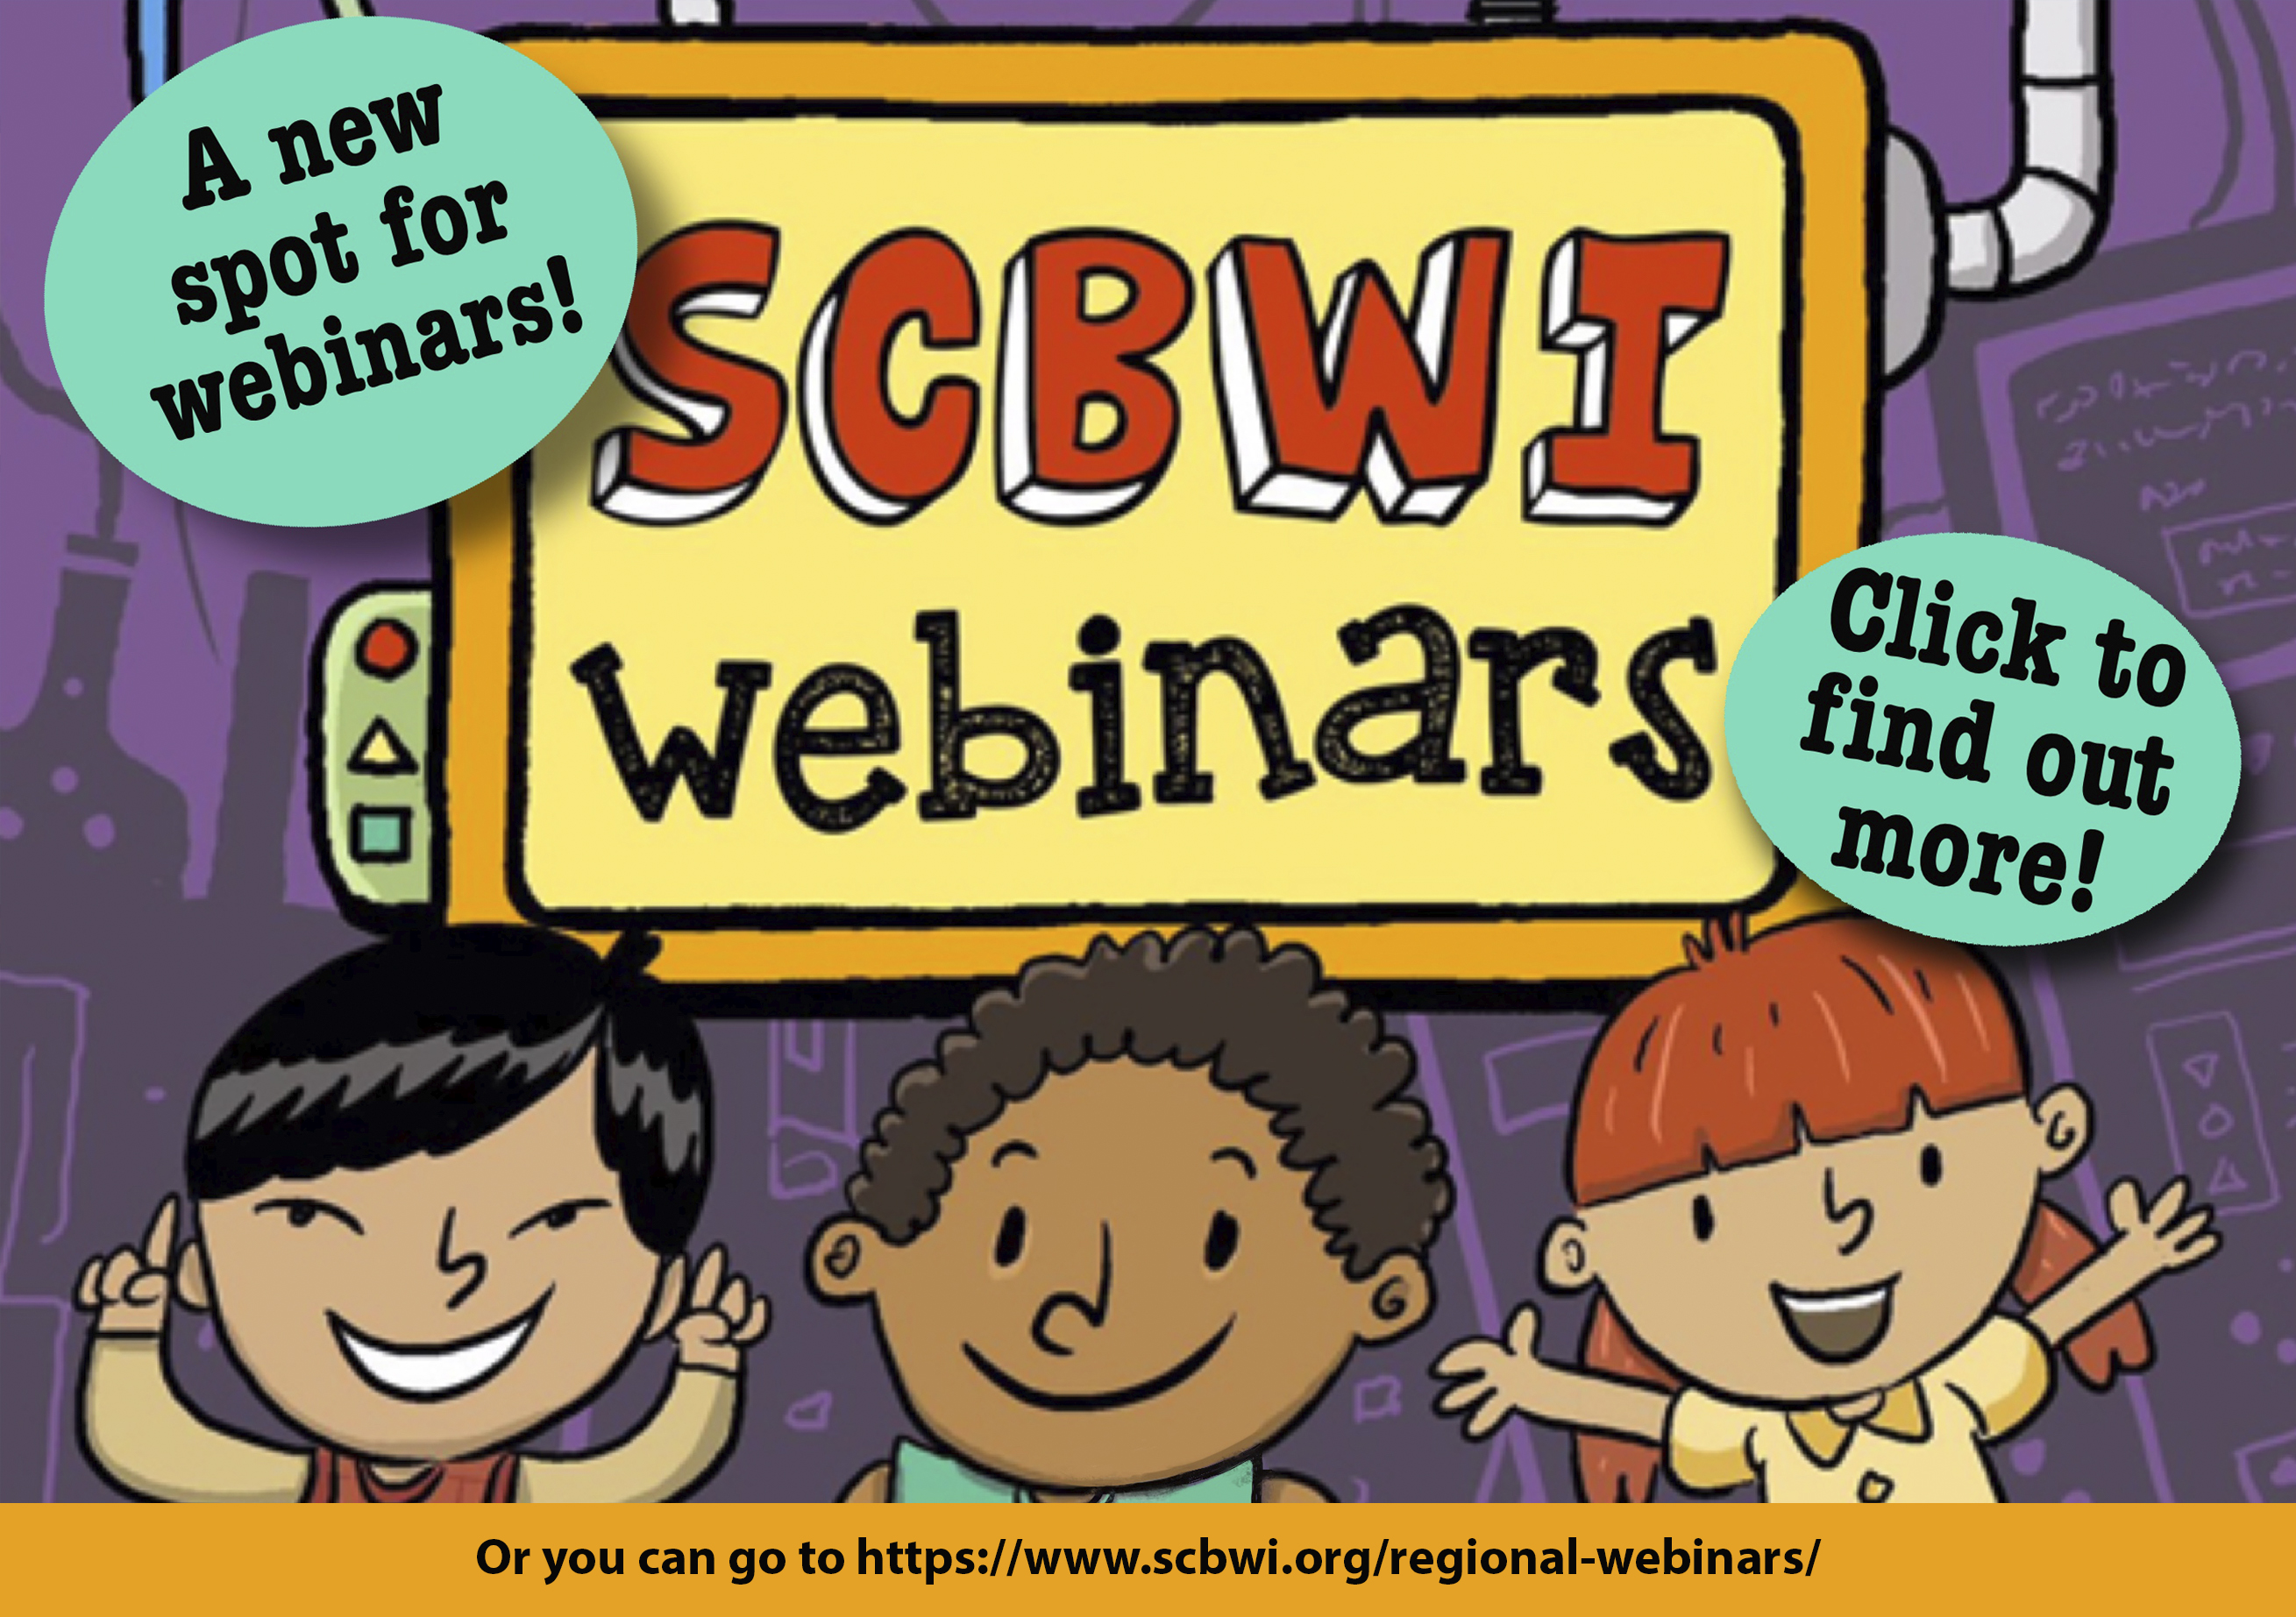 SCBWI webinars are a great way to hone your craft and learn about the publishing industry without the cost and travel required for an in-person conference. SCBWI regions from around the country and the world host webinars that you can connect to from a laptop or PC. For a complete listing of SCBWI webinars, click here.